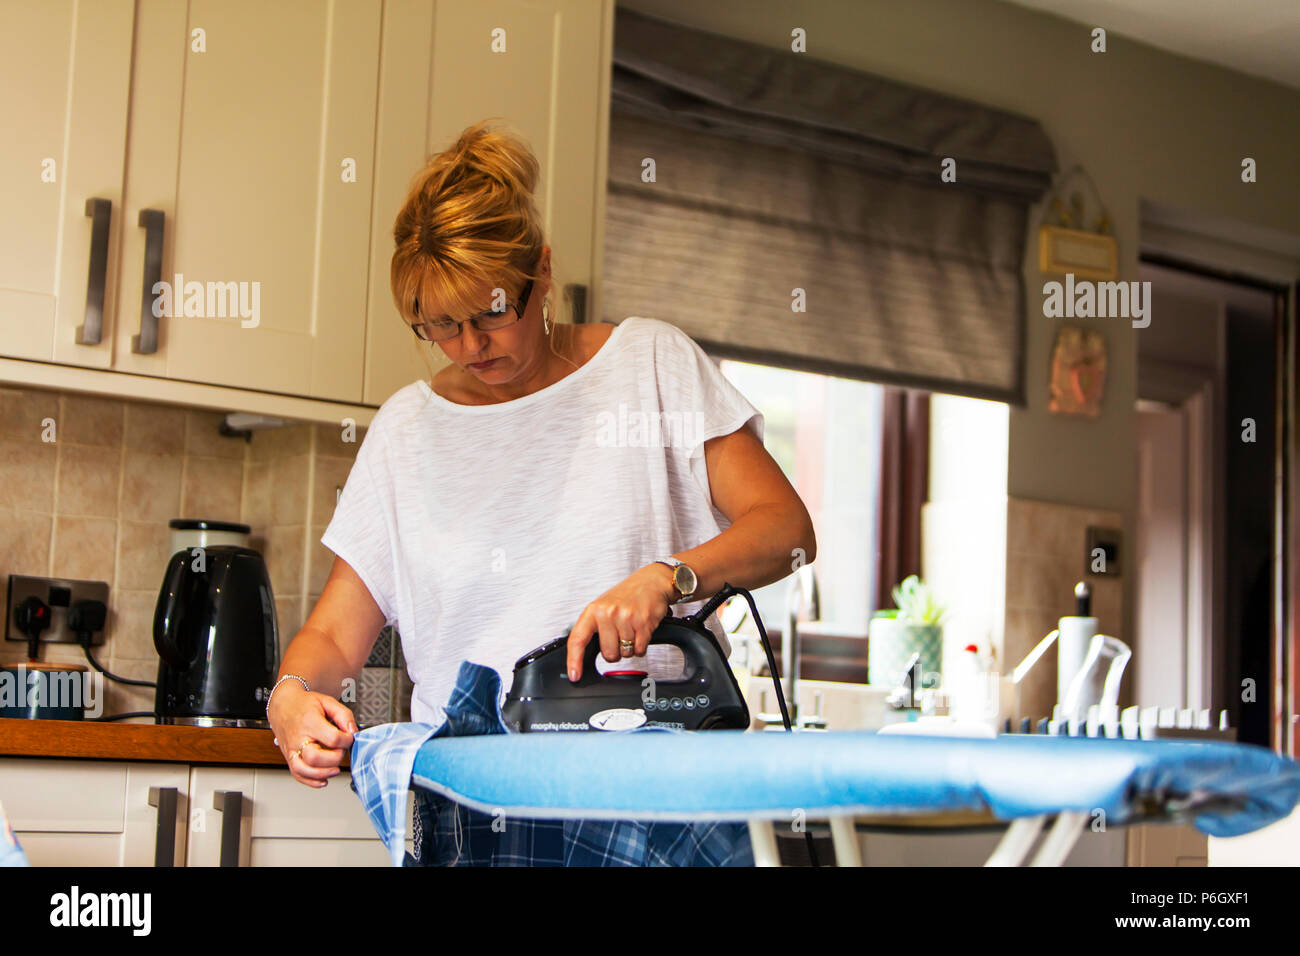 Woman ironing clothes, domestic chores, ironing clothes, woman using iron, ironing, pressing clothes, using ironing board, woman using iron, housework - Stock Image